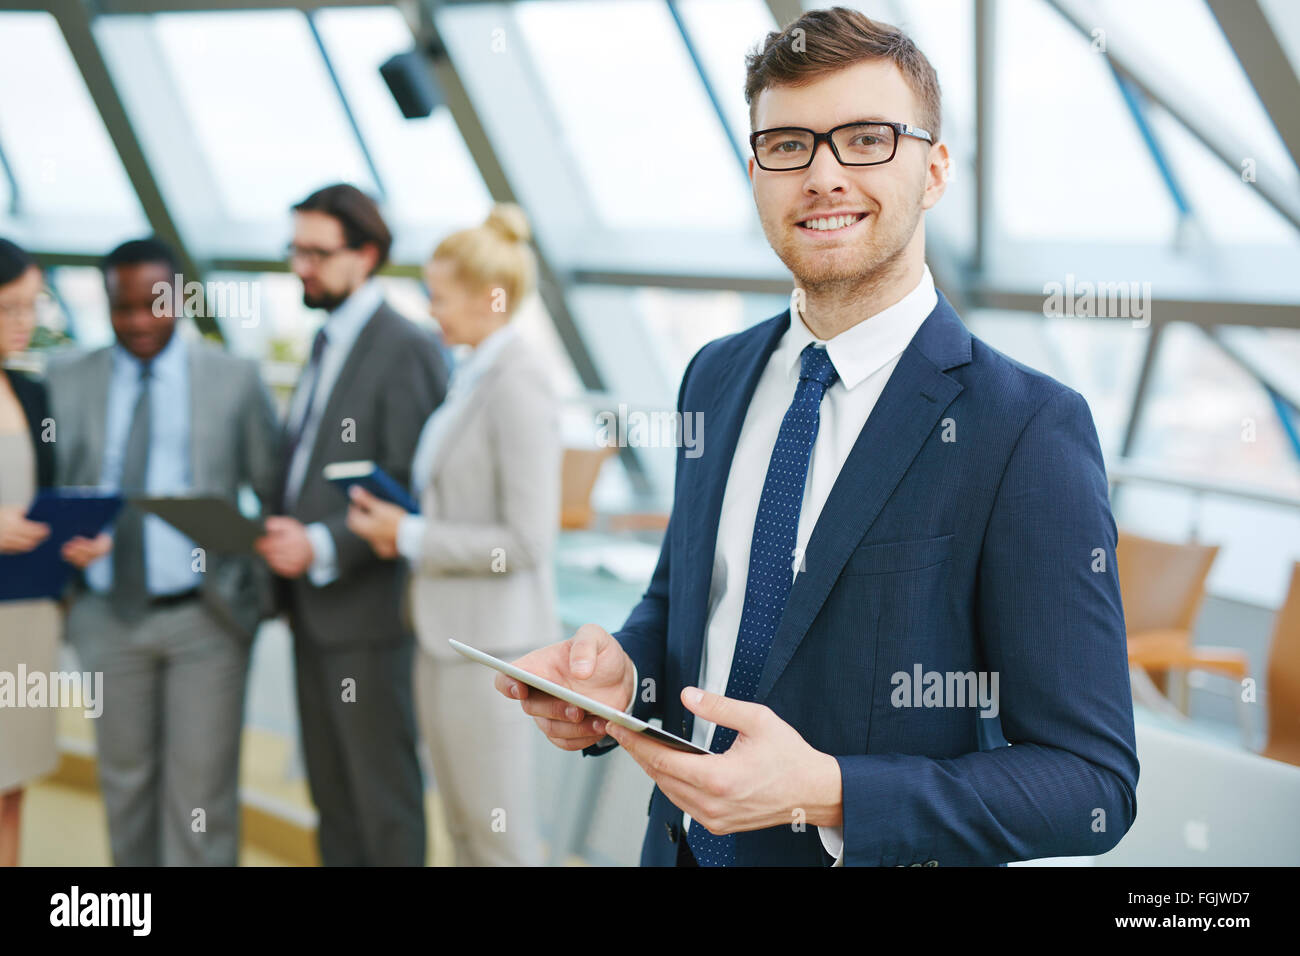 Young business leader with touchpad looking at camera on background of working people - Stock Image